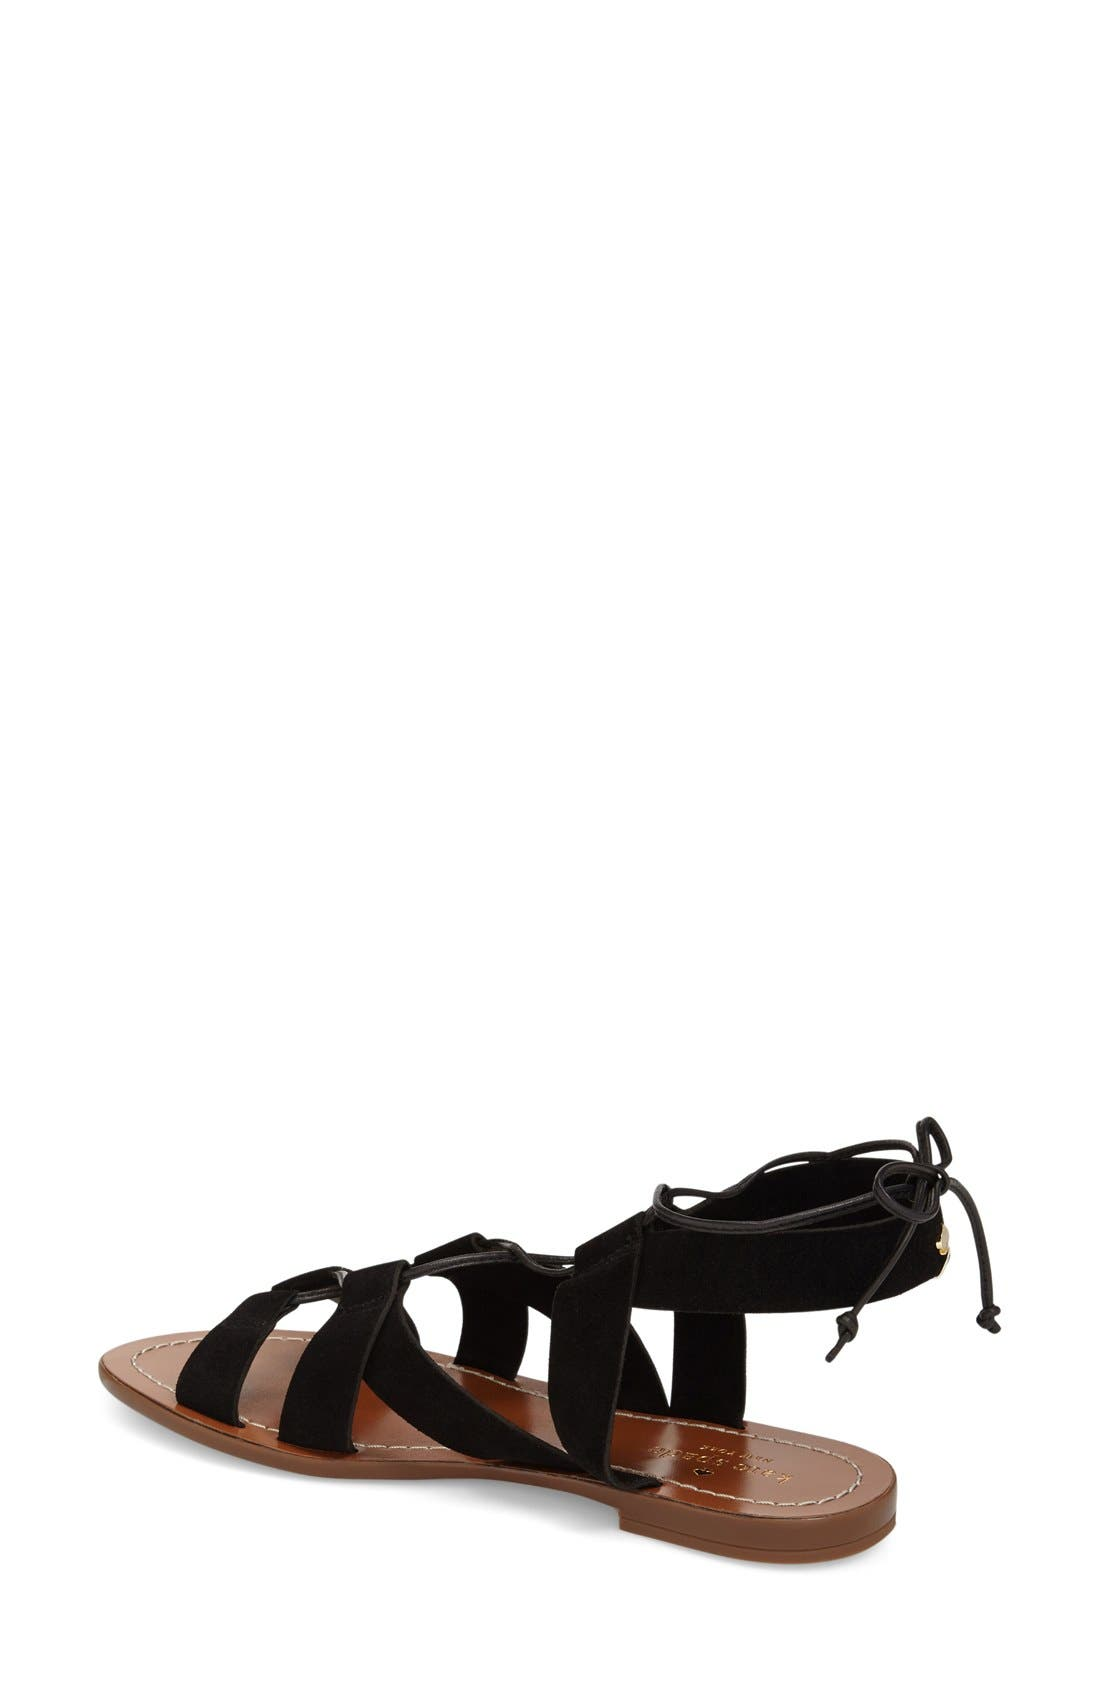 Alternate Image 2  - kate spade new york 'suno' sandal (Women)